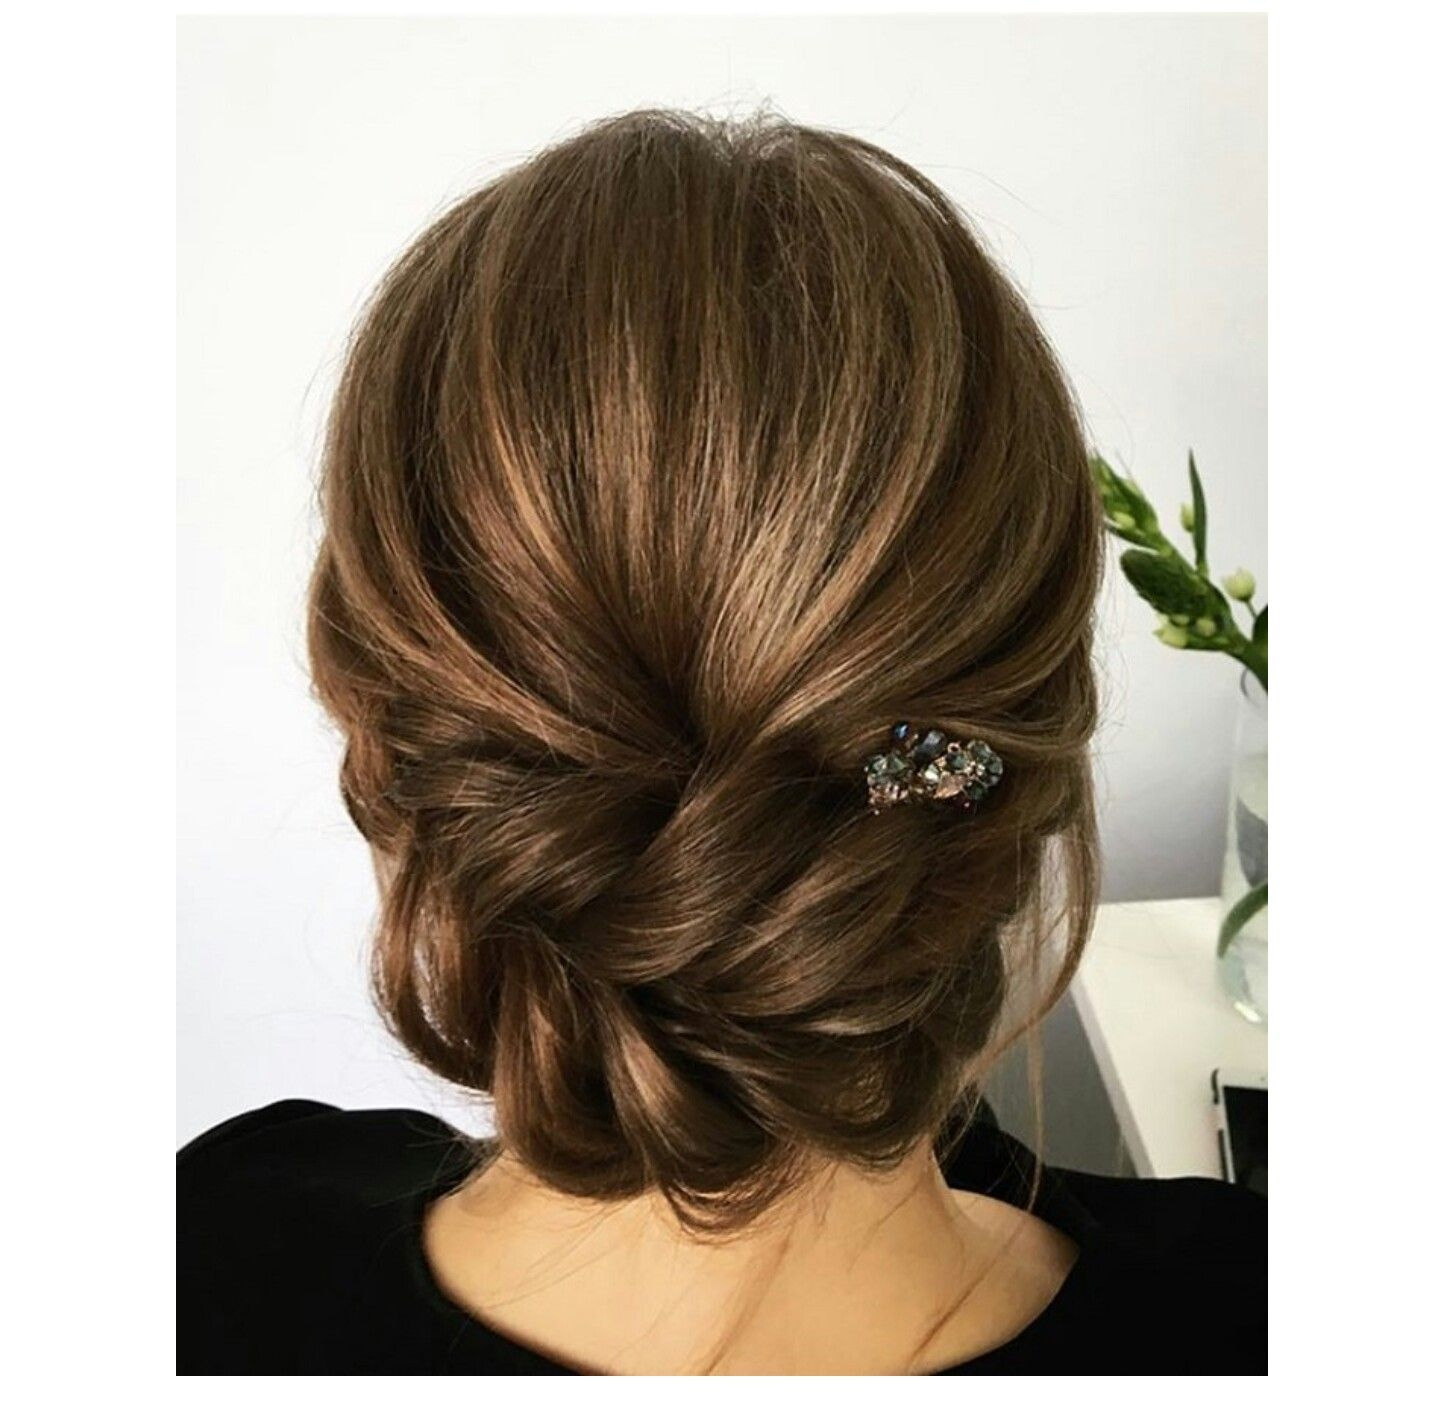 Pin by mackenzie eberle on hair and beauty pinterest hair style